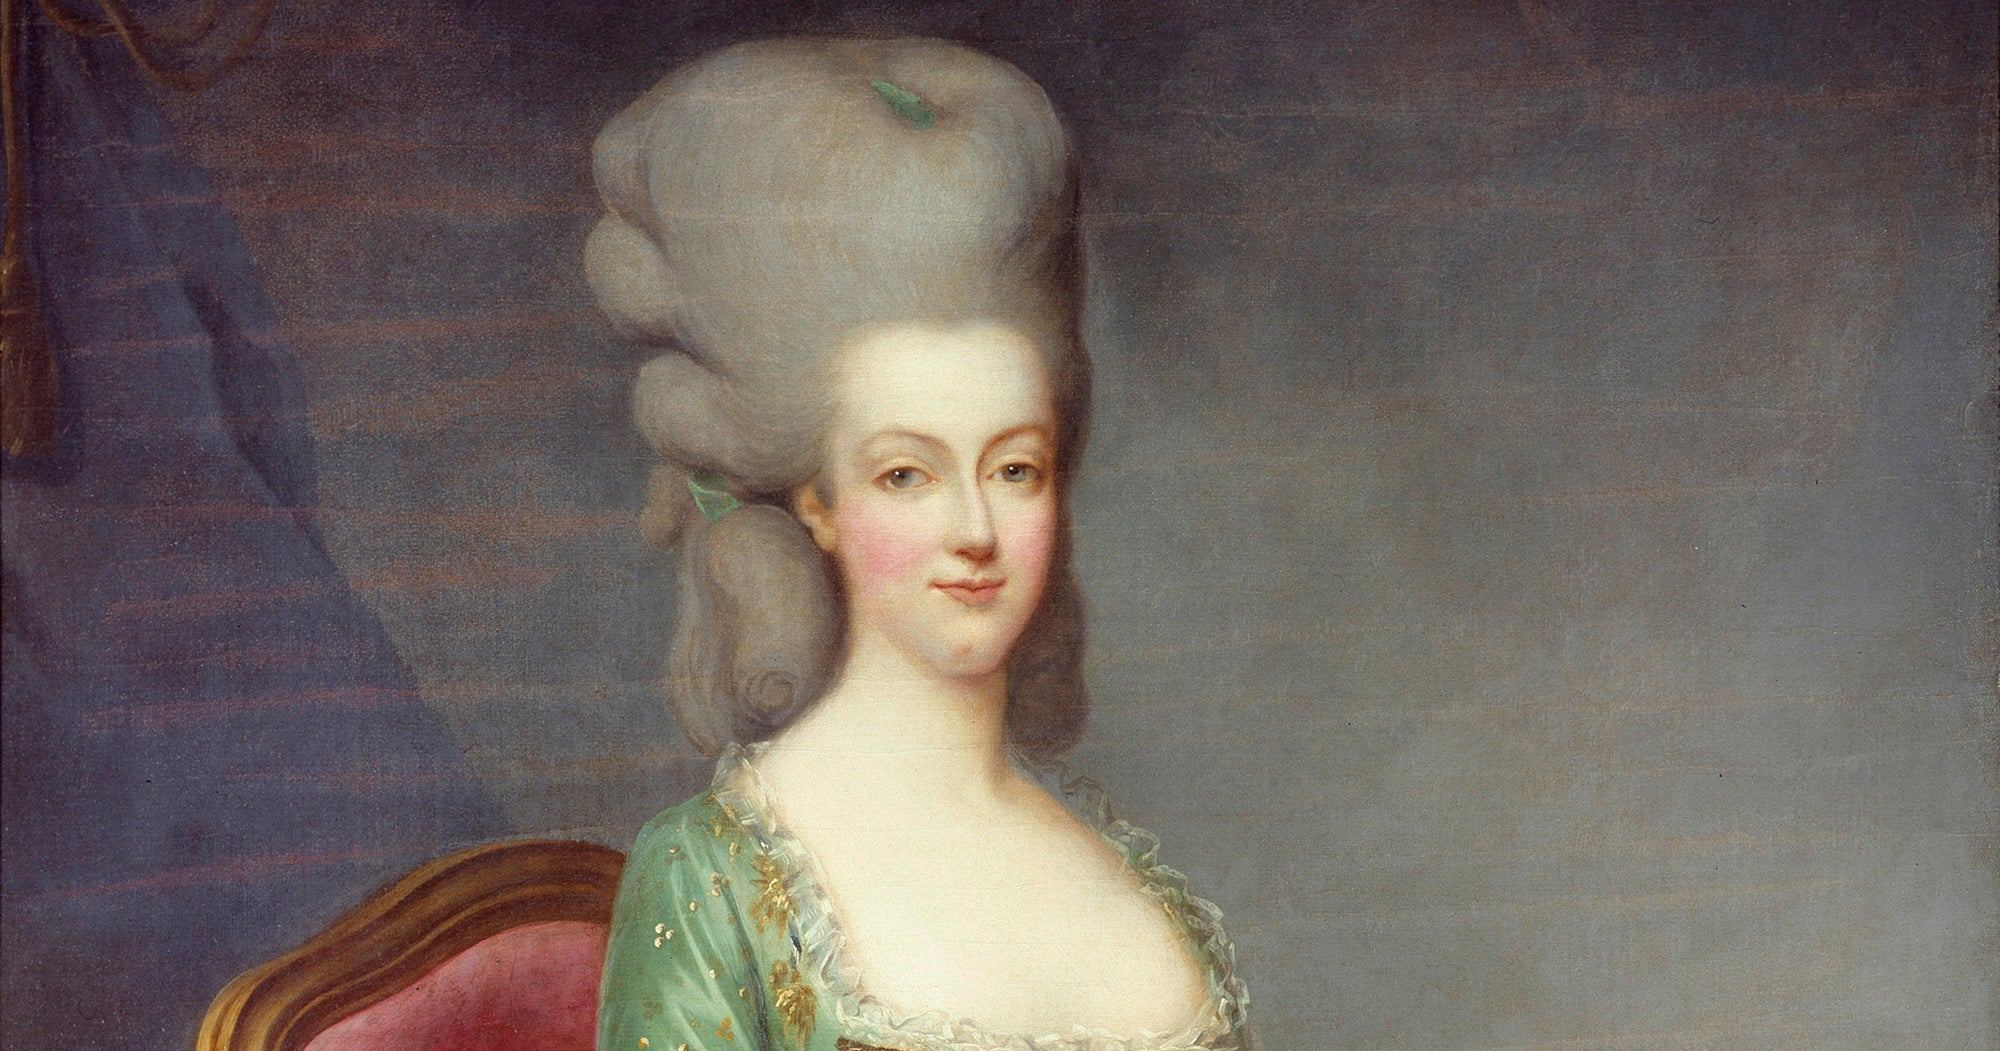 www.refinery29.com: The Sordid Tale Of The Woman Who Scammed Marie-Antoinette